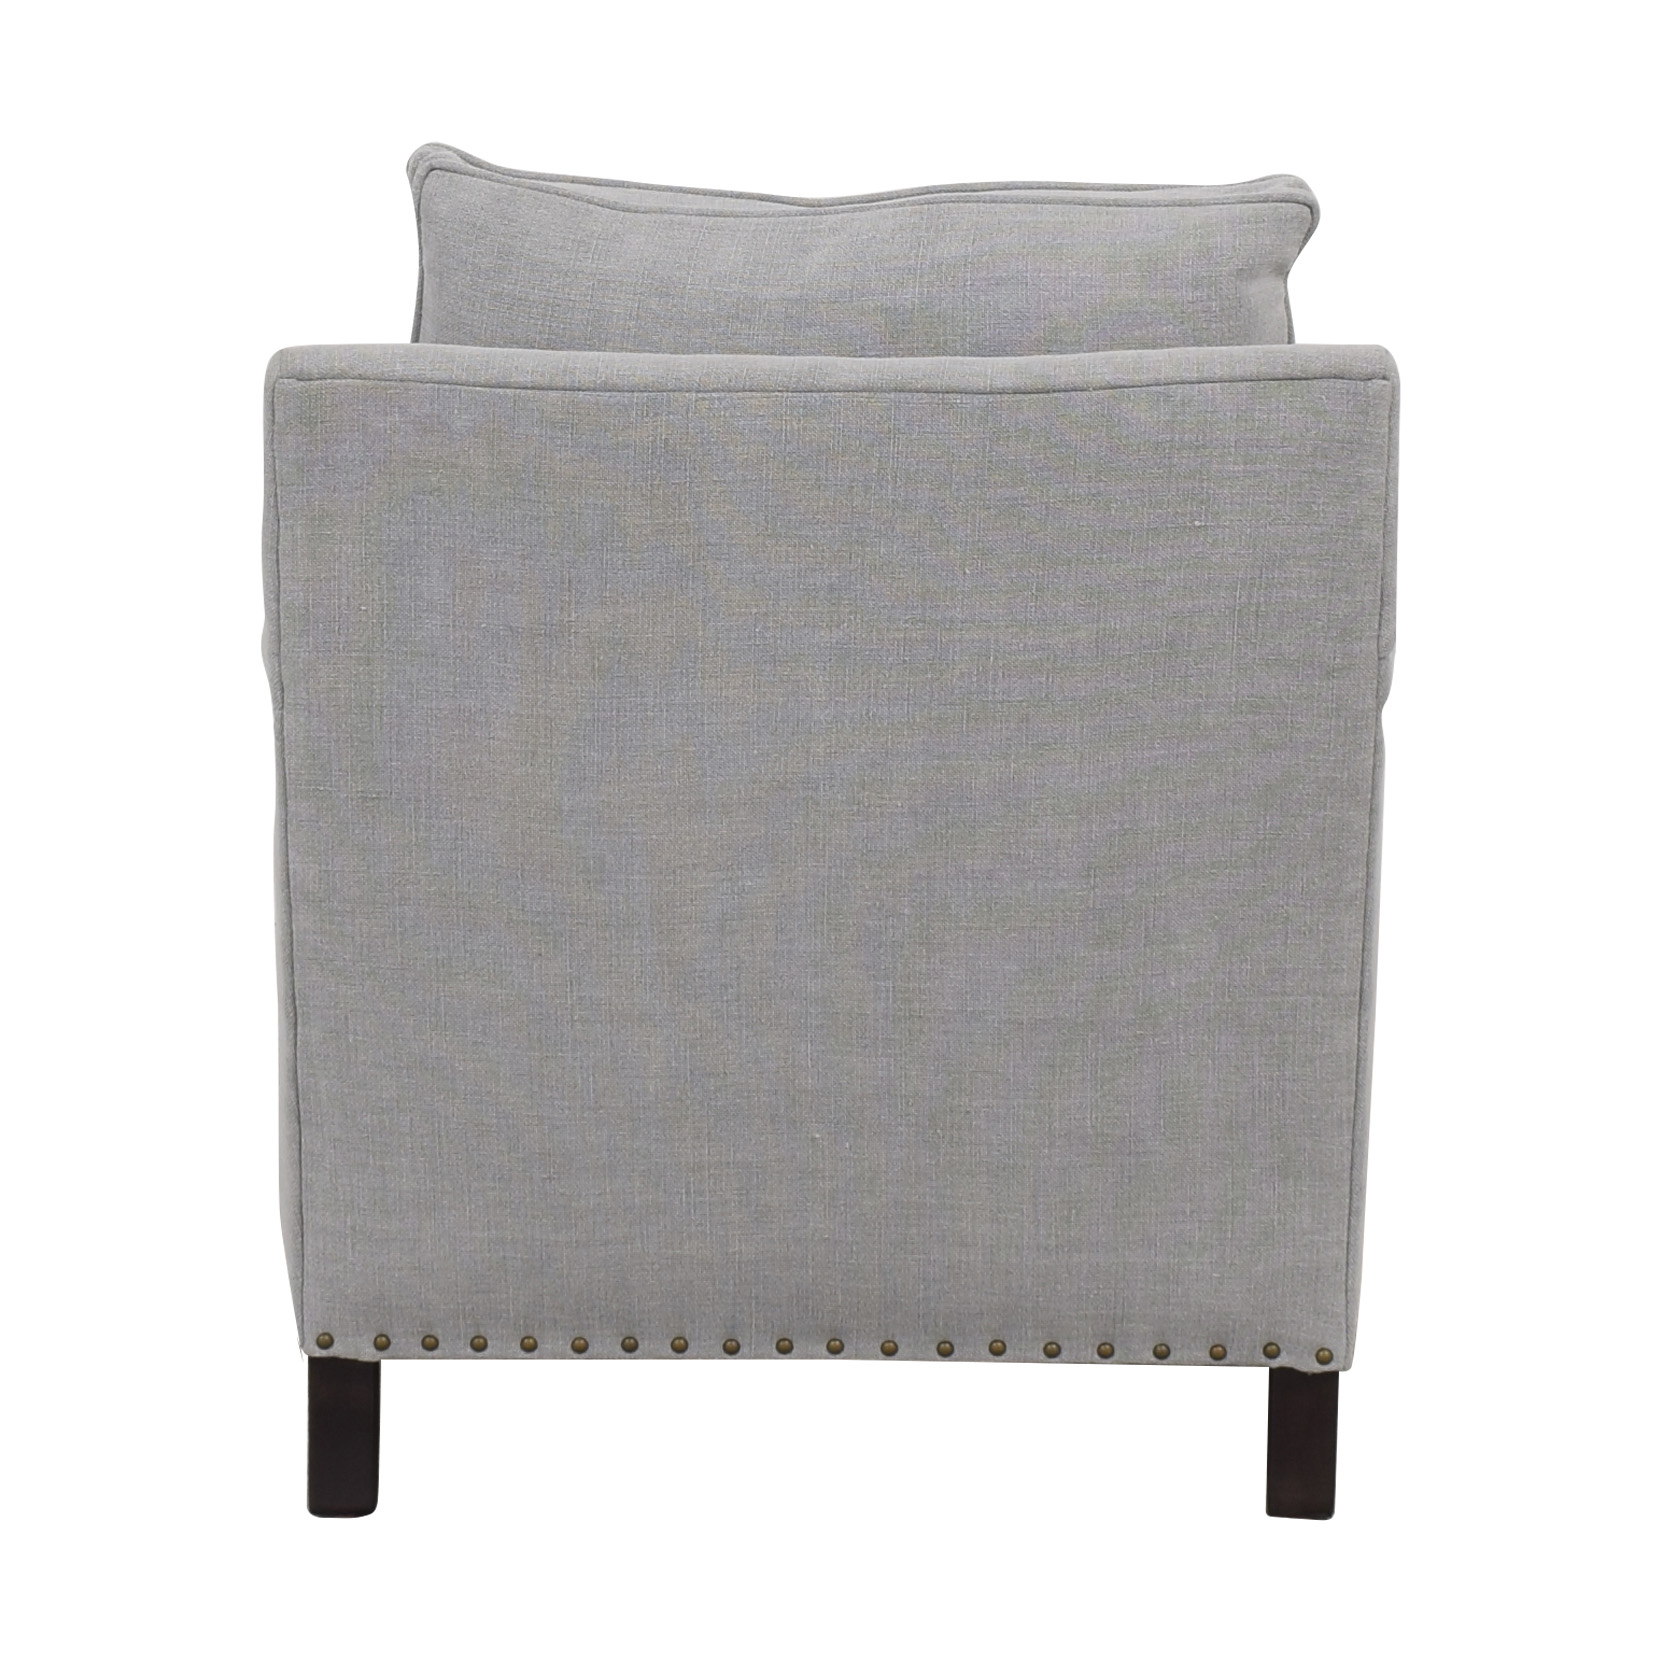 Williams Sonoma Williams Sononma Addison Chair nj